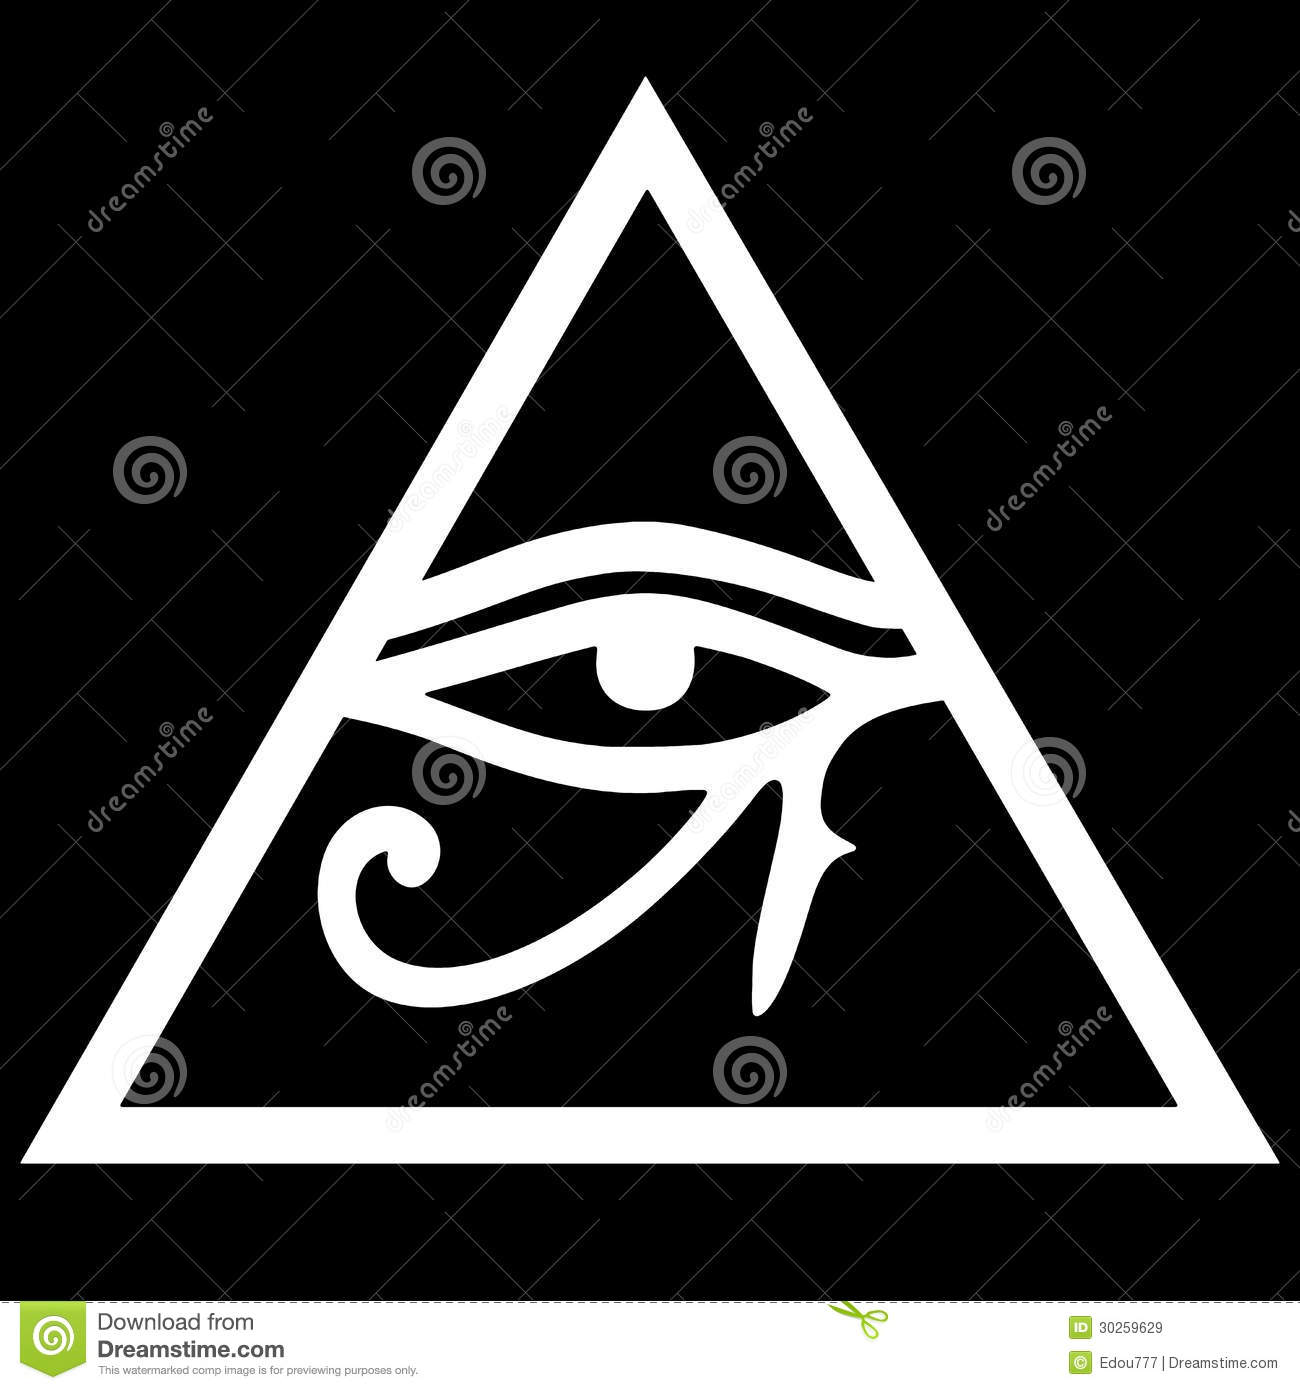 Illuminati clipart #13, Download drawings